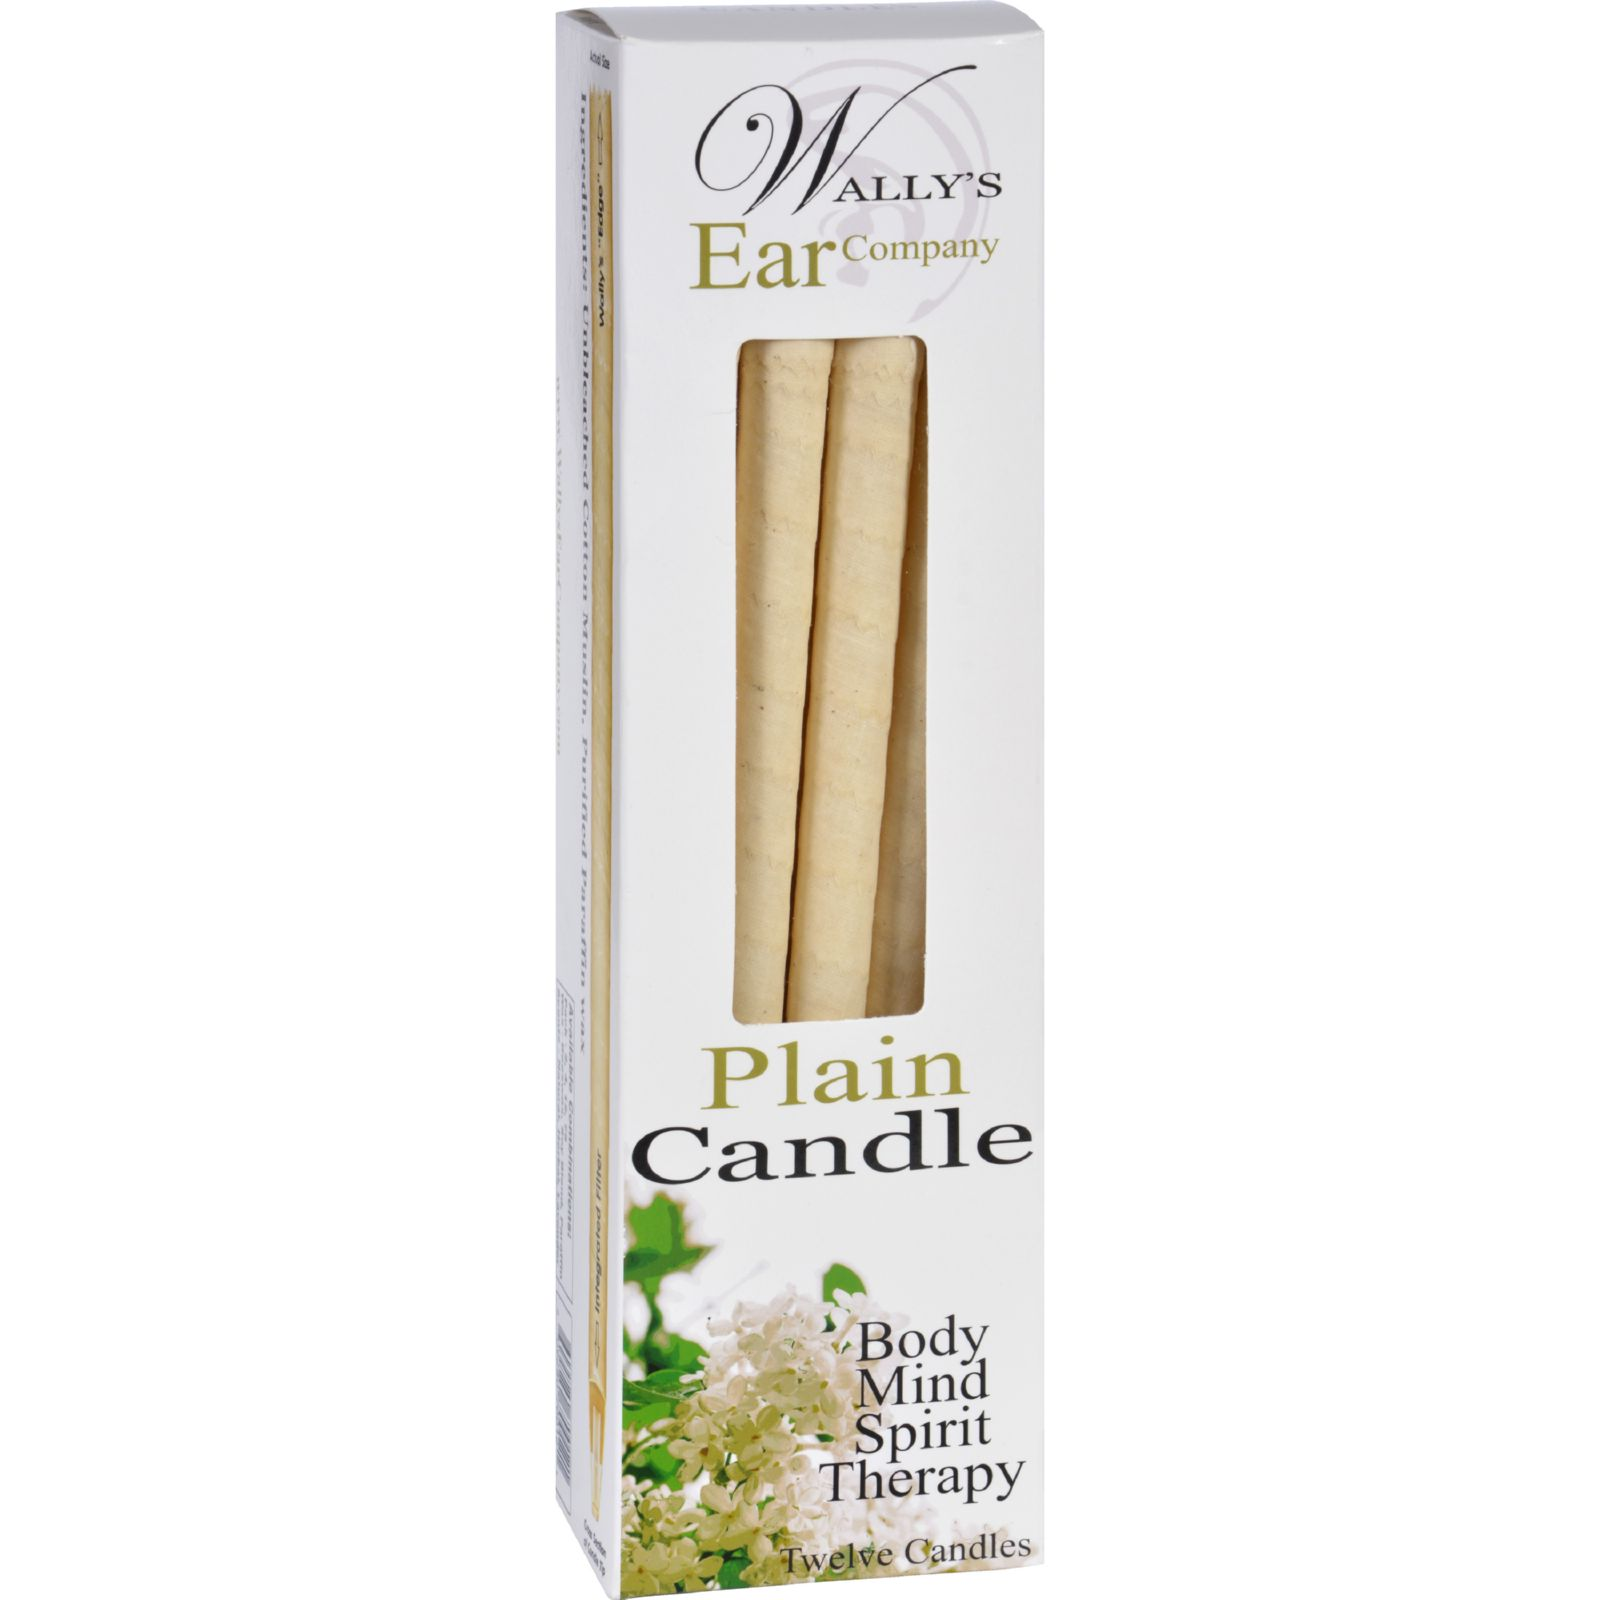 Wally's Candle Plain 12 Candles by Wally'S Natural Products